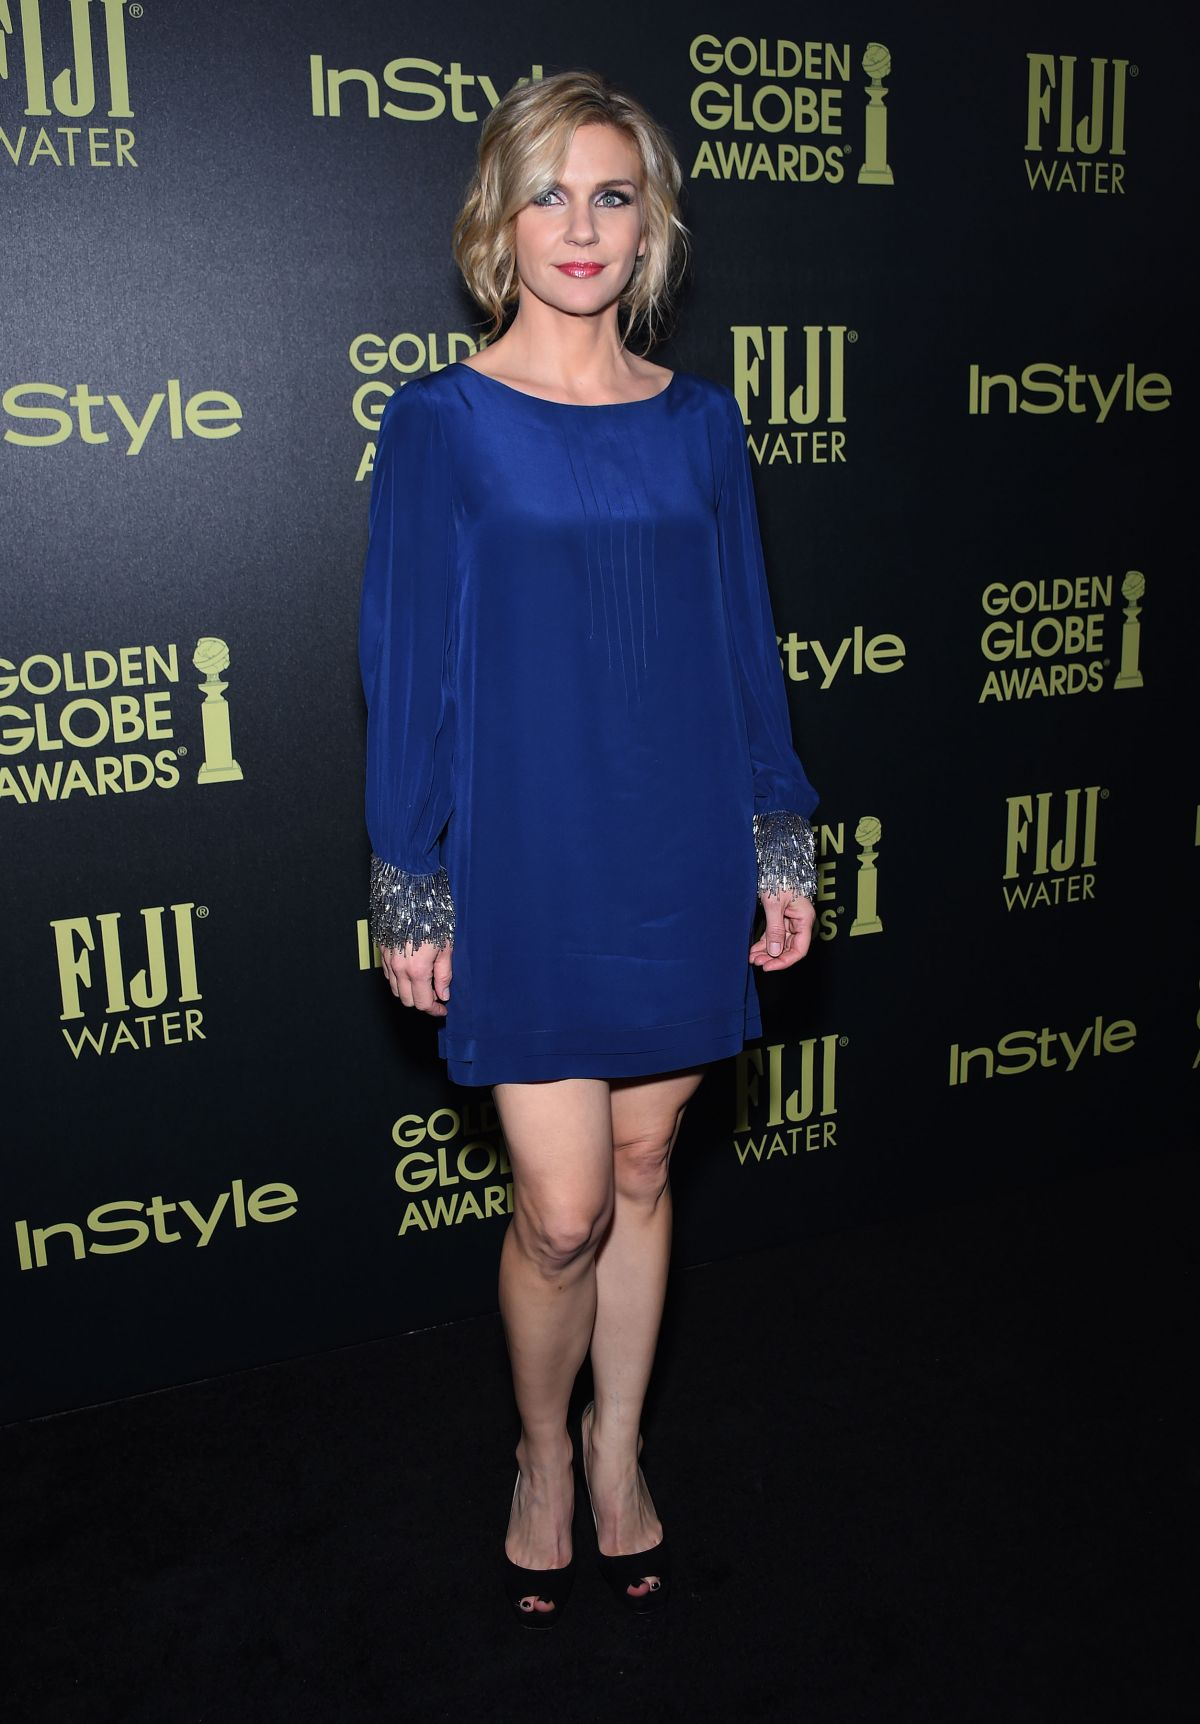 RHEA SEEHORN at hfpa and Instyle Celebrate 2016 Golden Globe Award Season in West Hollywood 11/17/2015